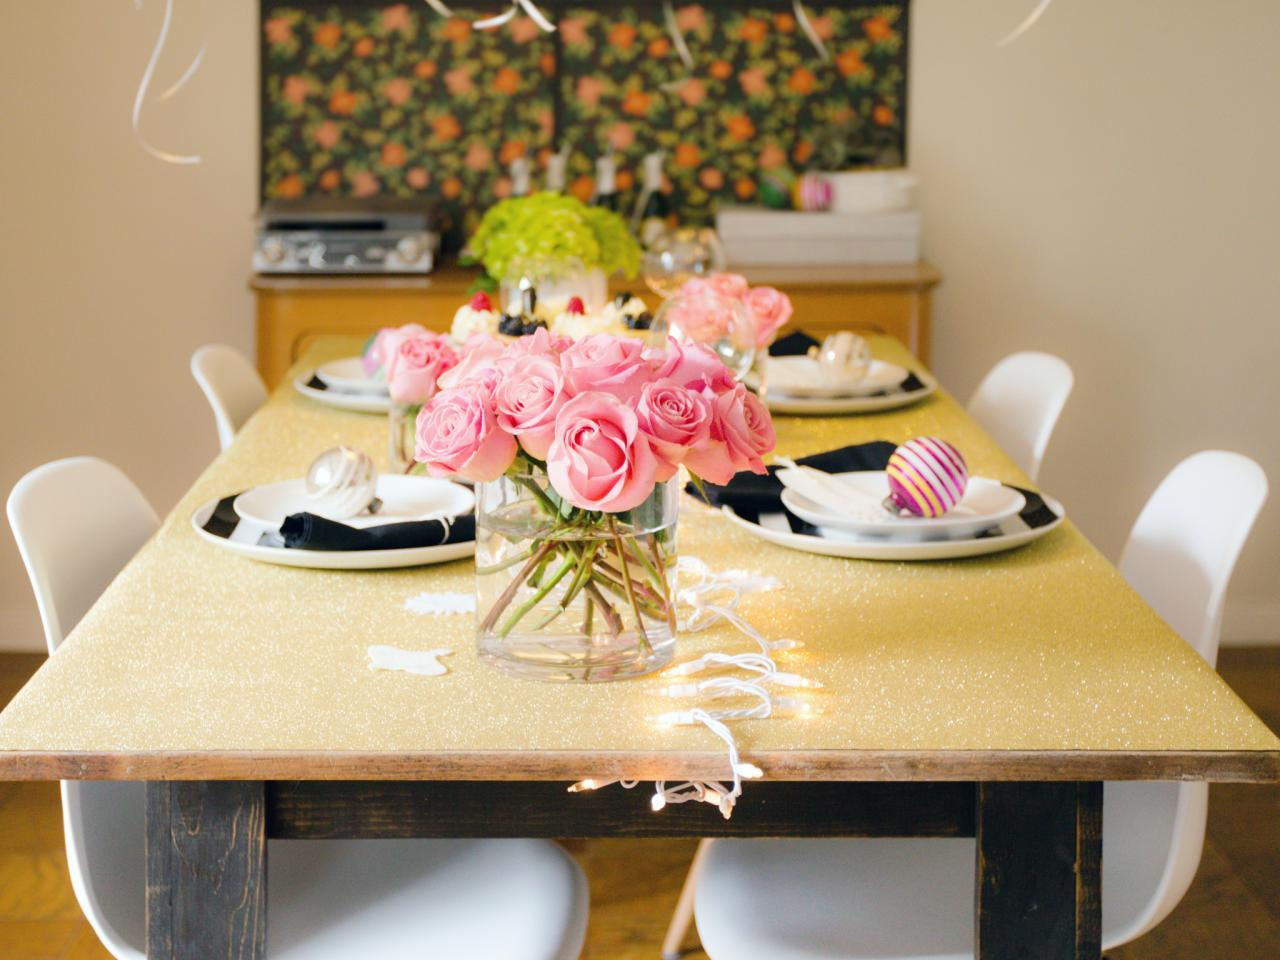 Original_Jeanine-Hays-new-years-eve-upcycle-wrapping-paper-tablecloth_h.jpg.rend.hgtvcom.1280.960.jpg